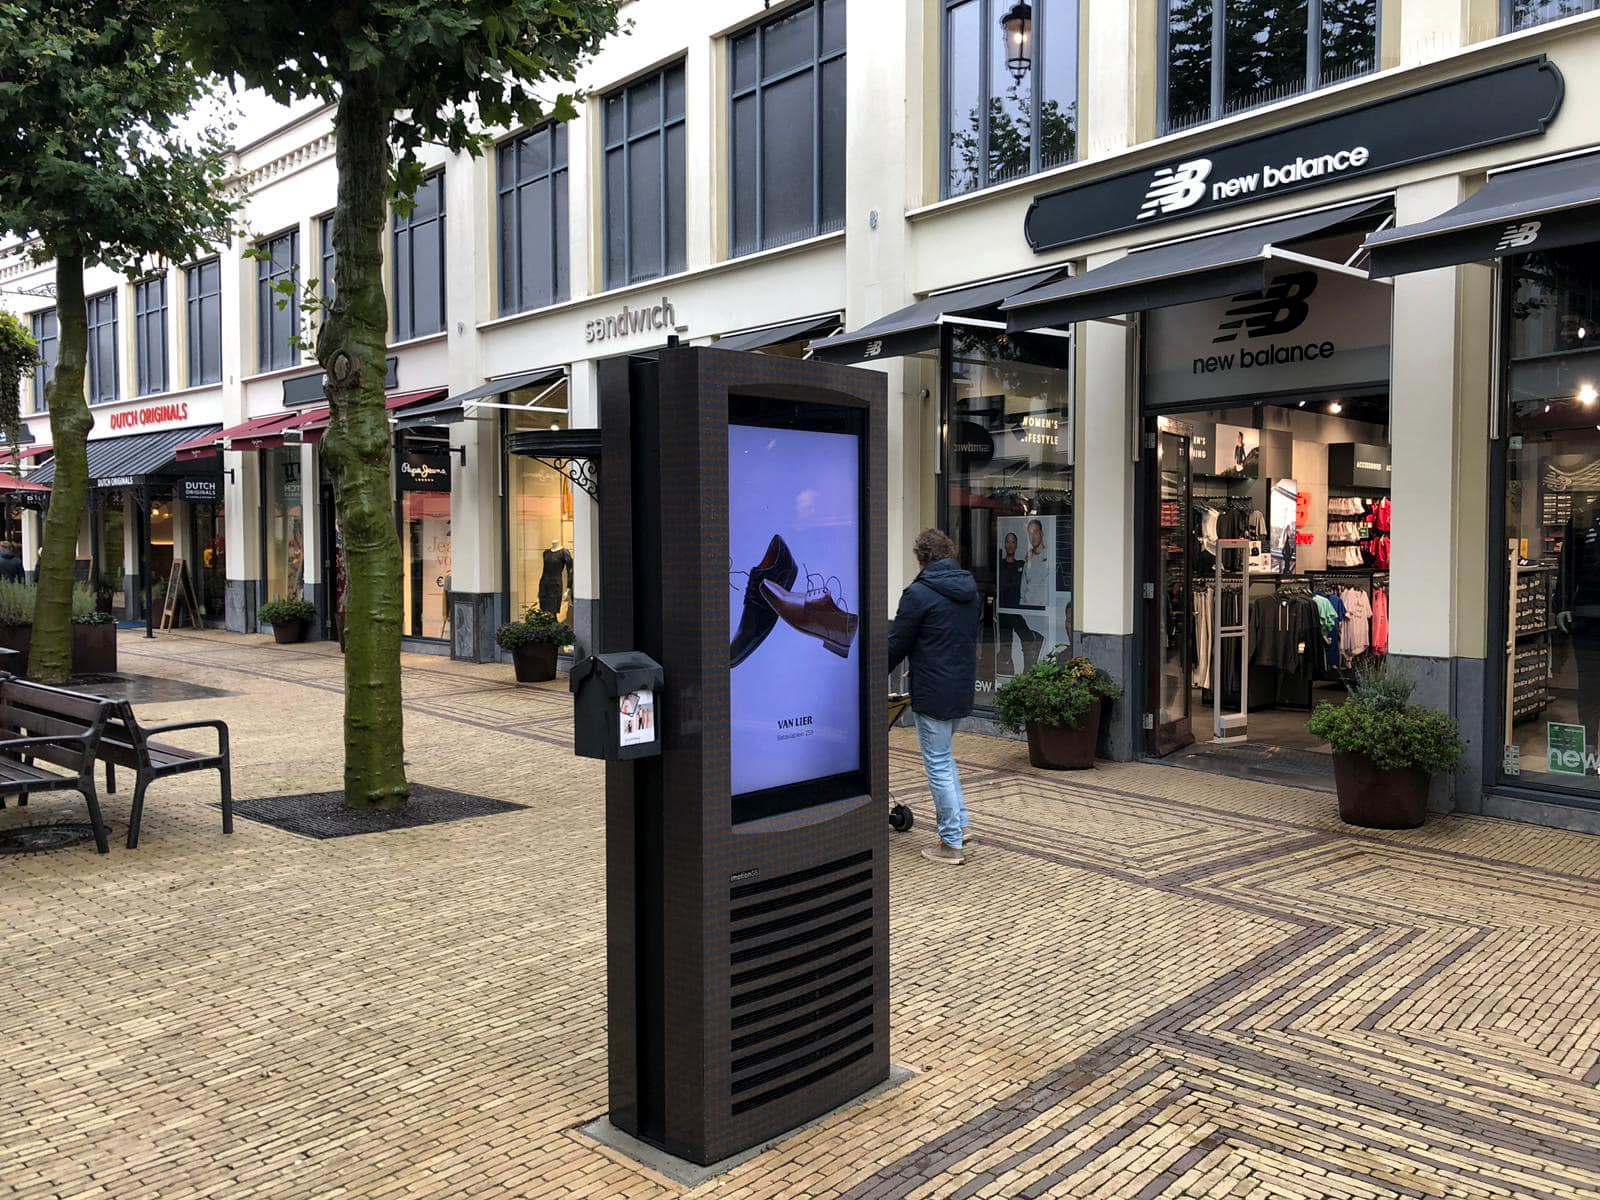 Kiosk - Bataviastad - Digital Signage - Outdoor - Touchscreen - Digital Pixel Marketing